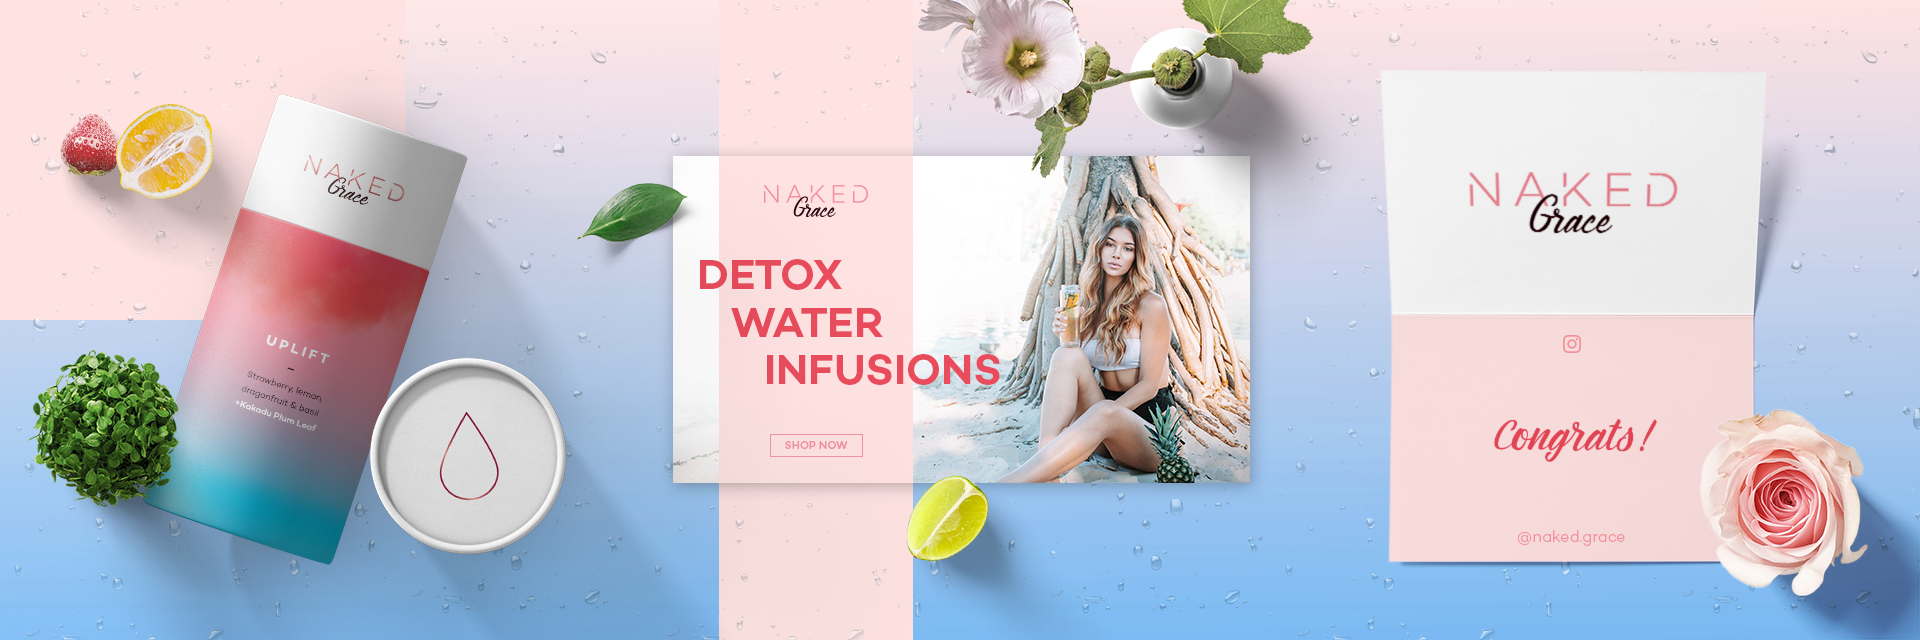 Branding and Digital design, web, ui/ux for a water infusion startup